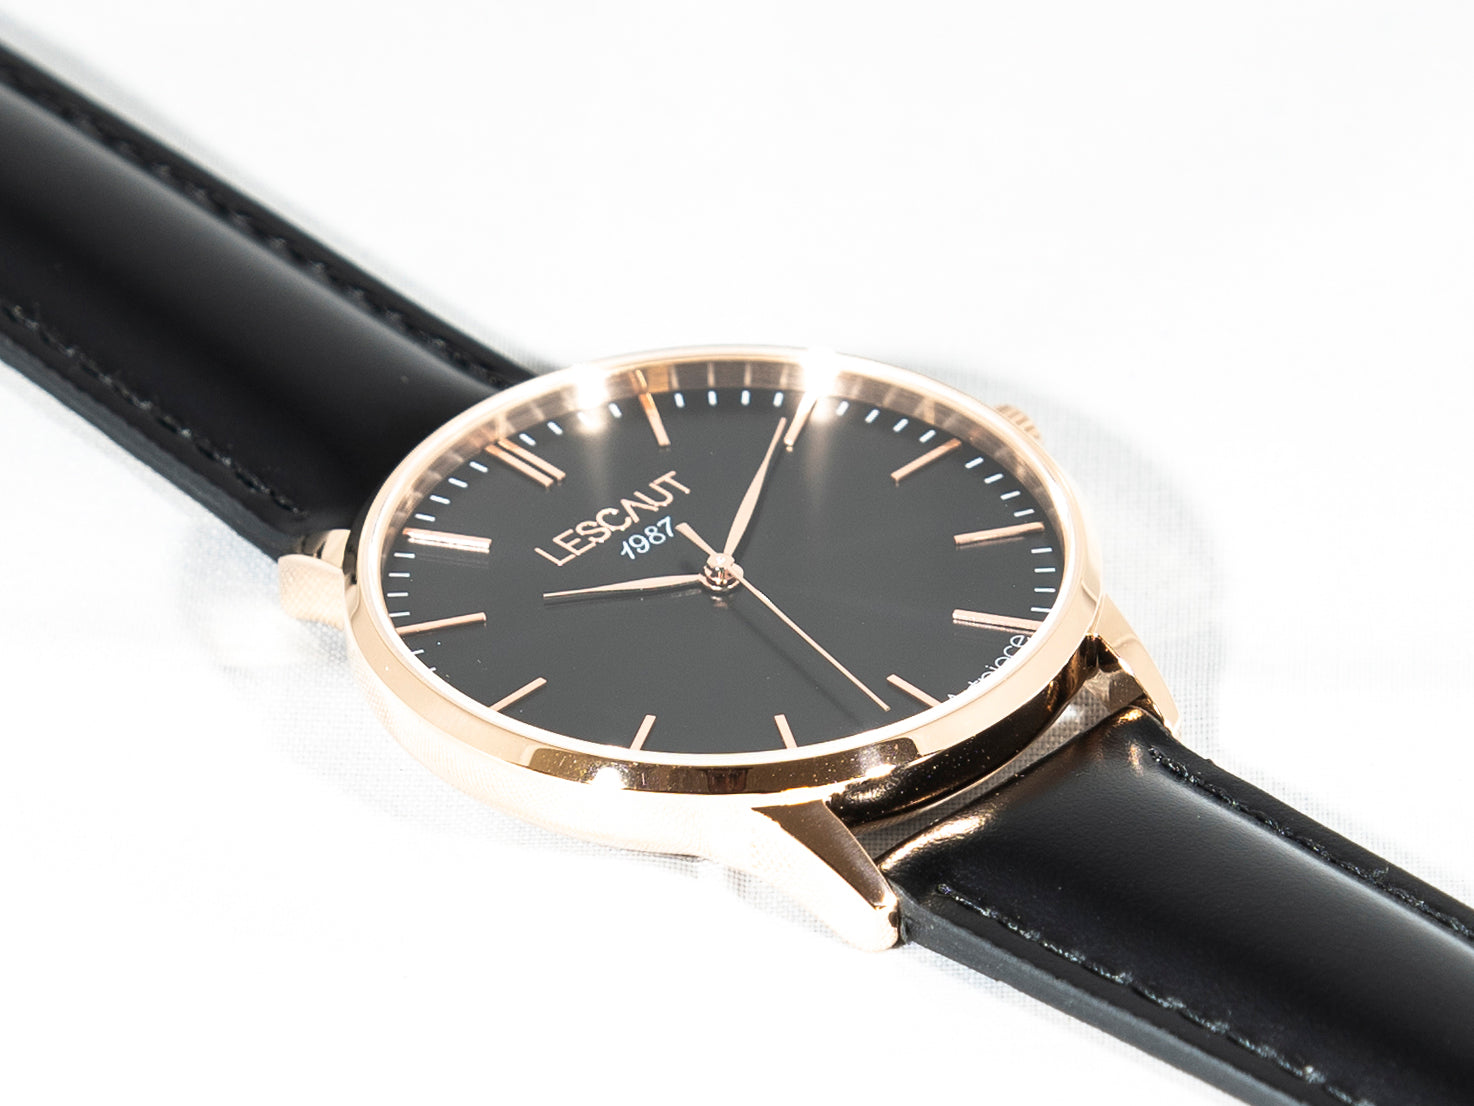 LESCAUT horloge the pink mavin close-up quartz zwarte wijzerplaat roze gouden horlogekast zwart leer bandje pink gold case deep black dial black leather watch strap